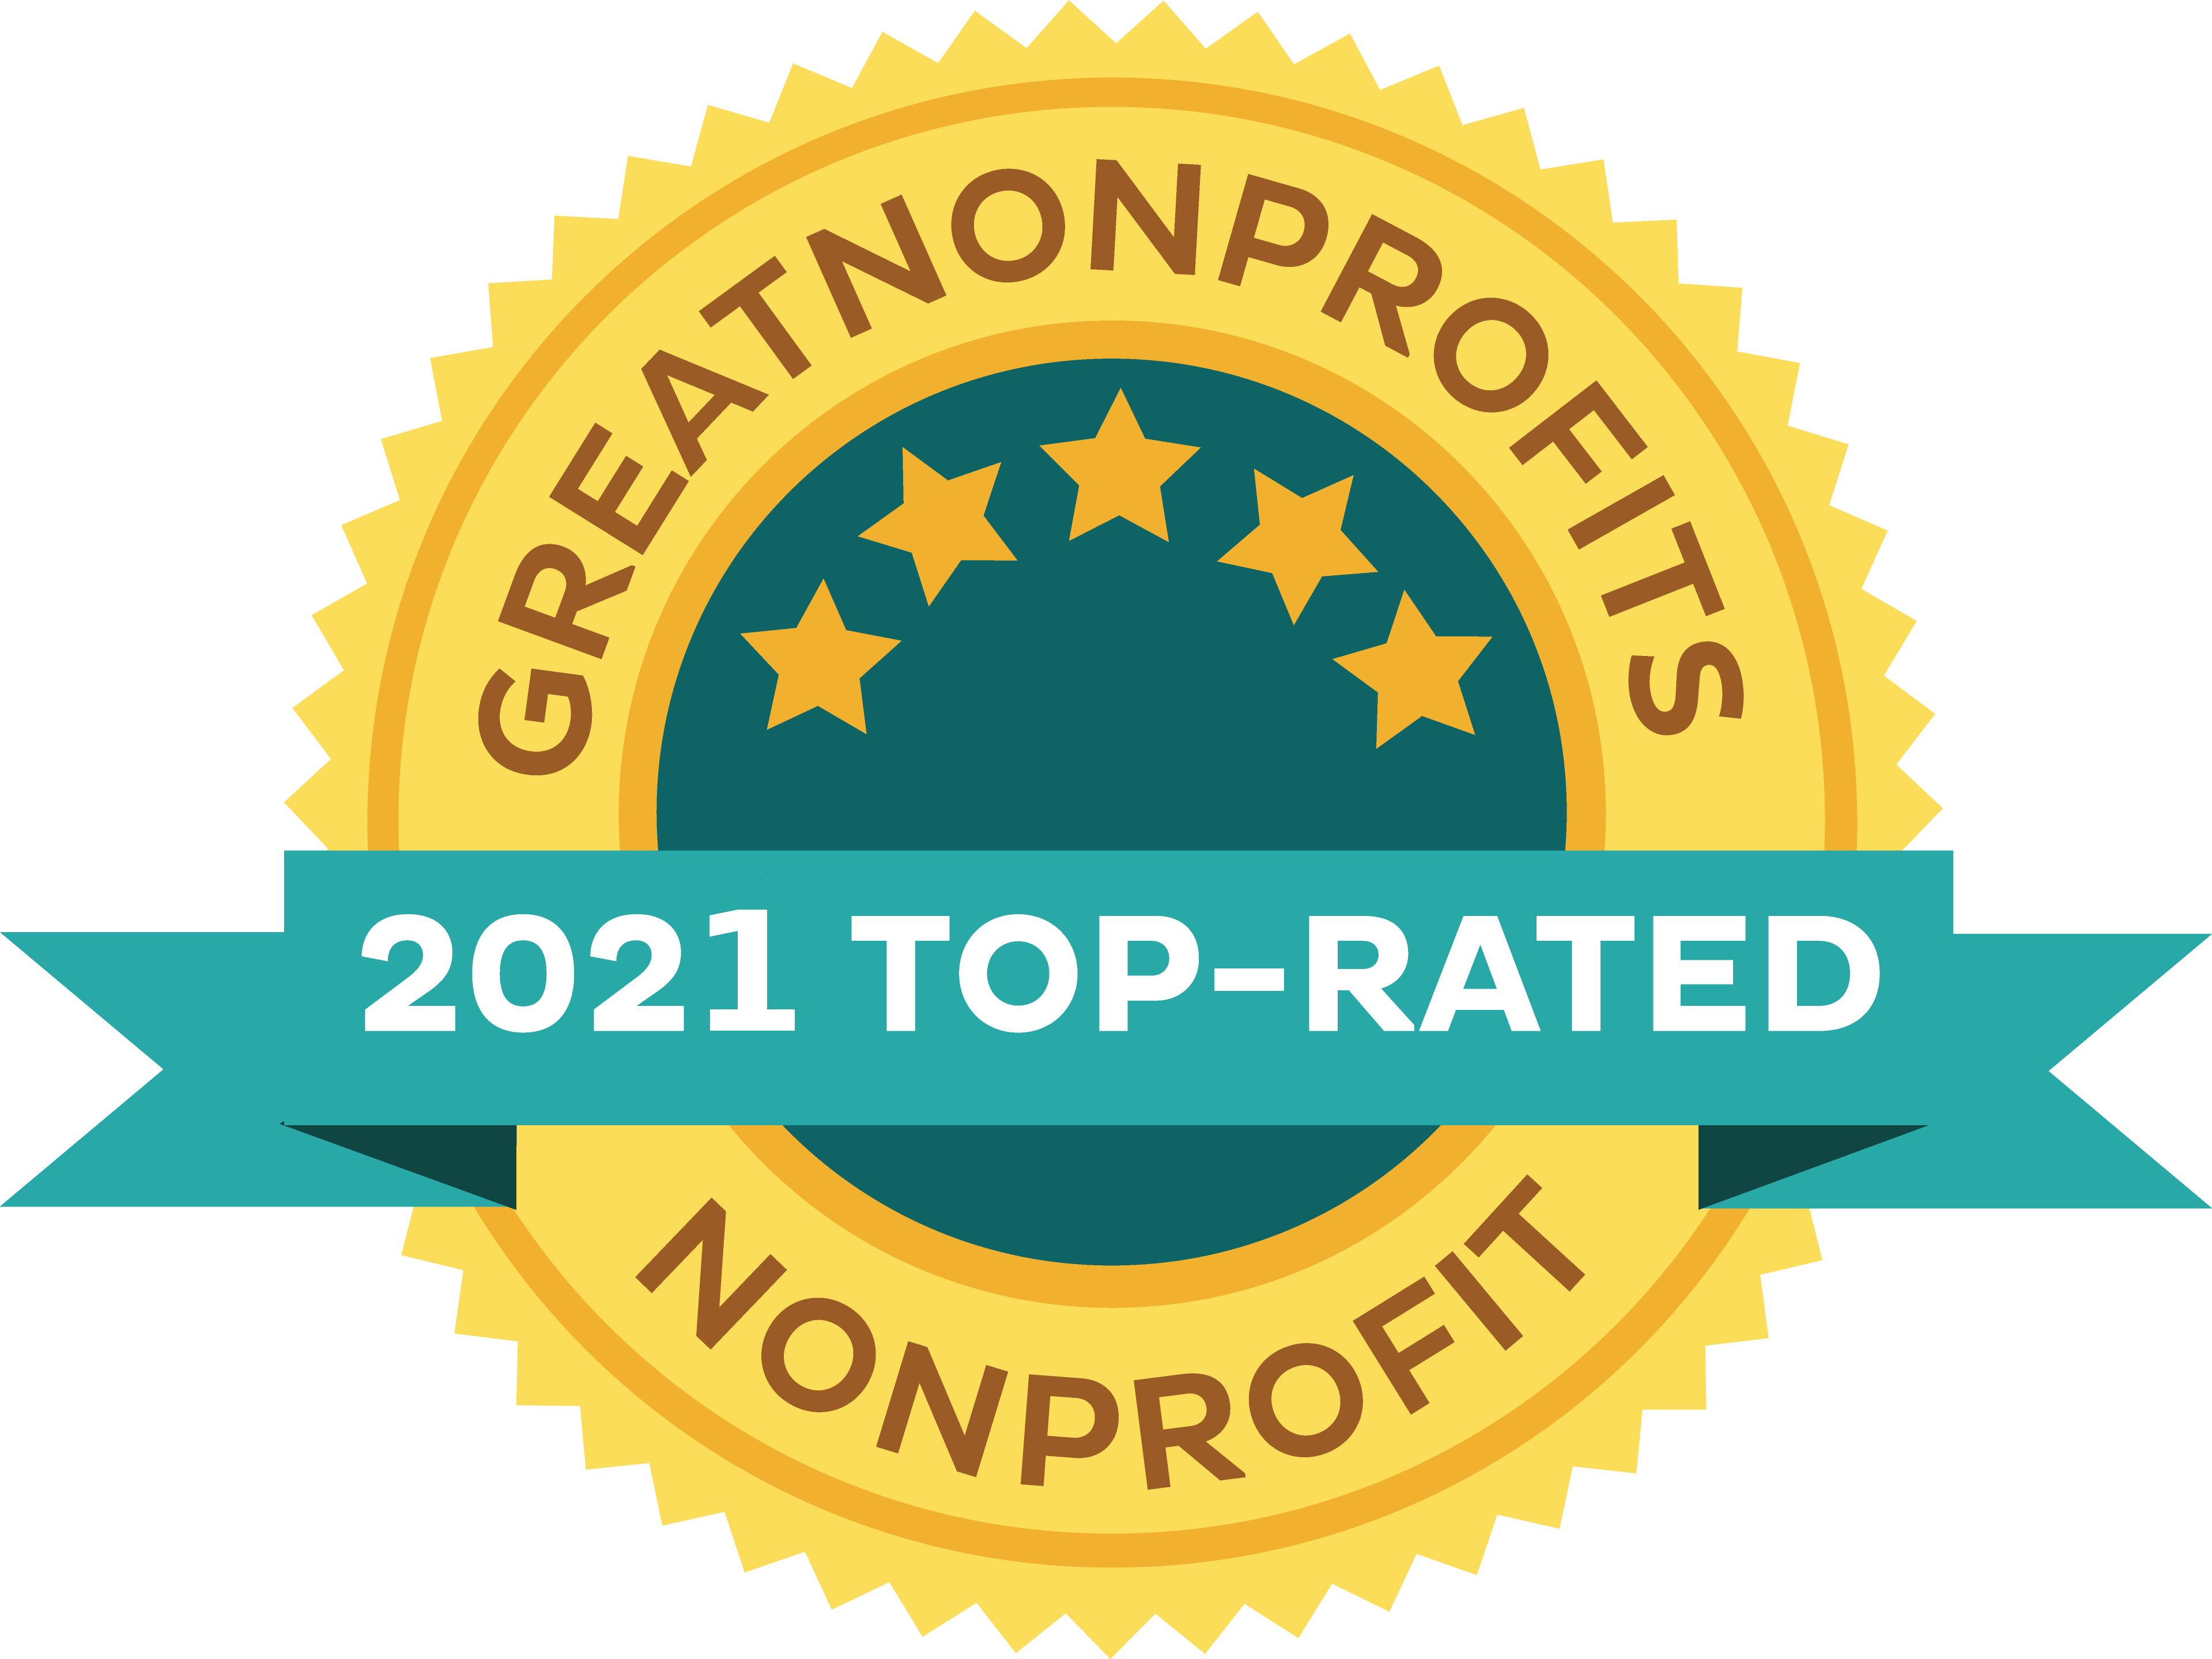 Vouchers 4 Veggies - EatSF Nonprofit Overview and Reviews on GreatNonprofits